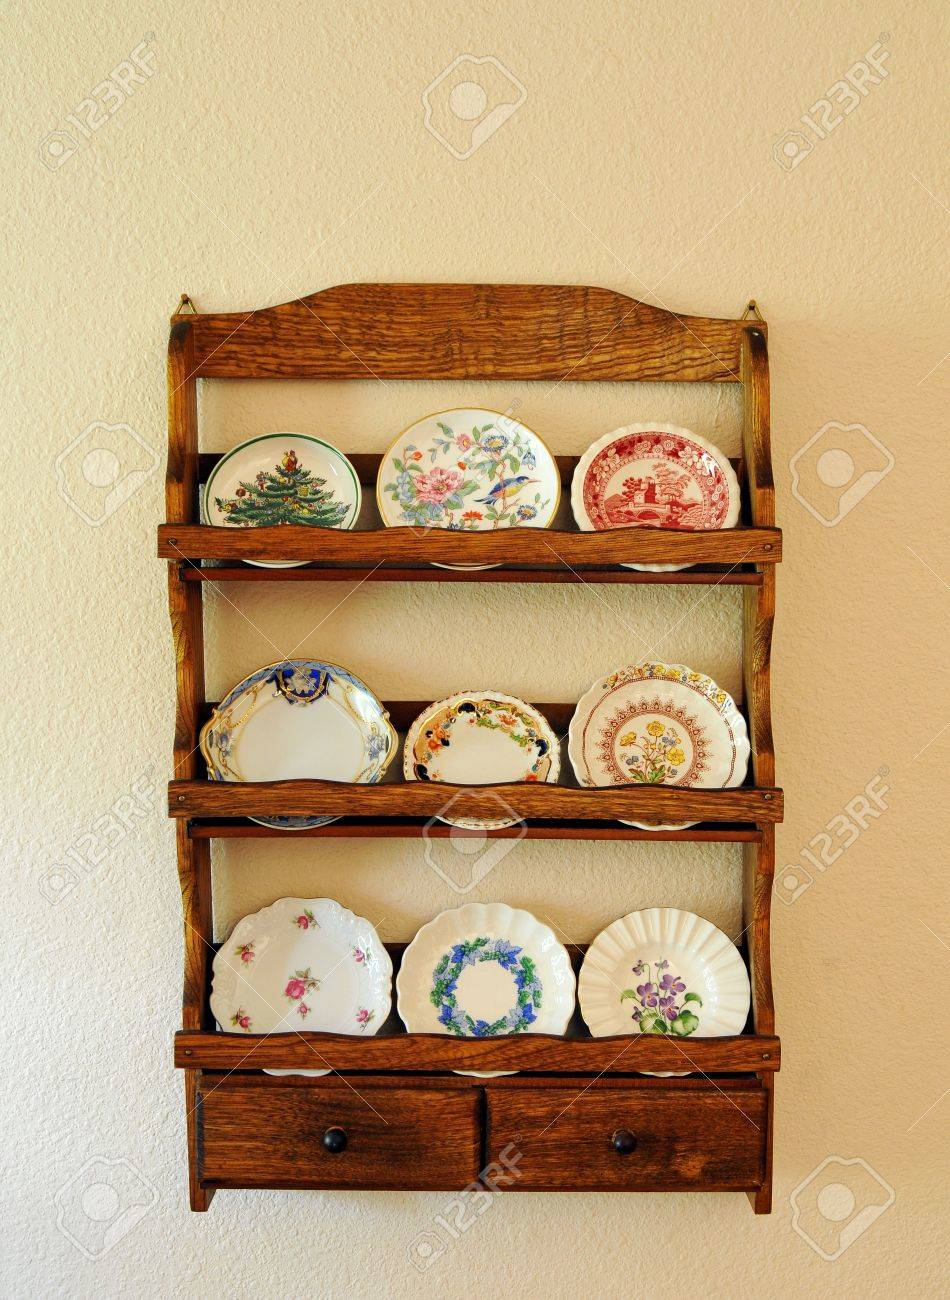 Antique Miniature Butter Pat Plates On An Old Wooden Shelf Hanging ...